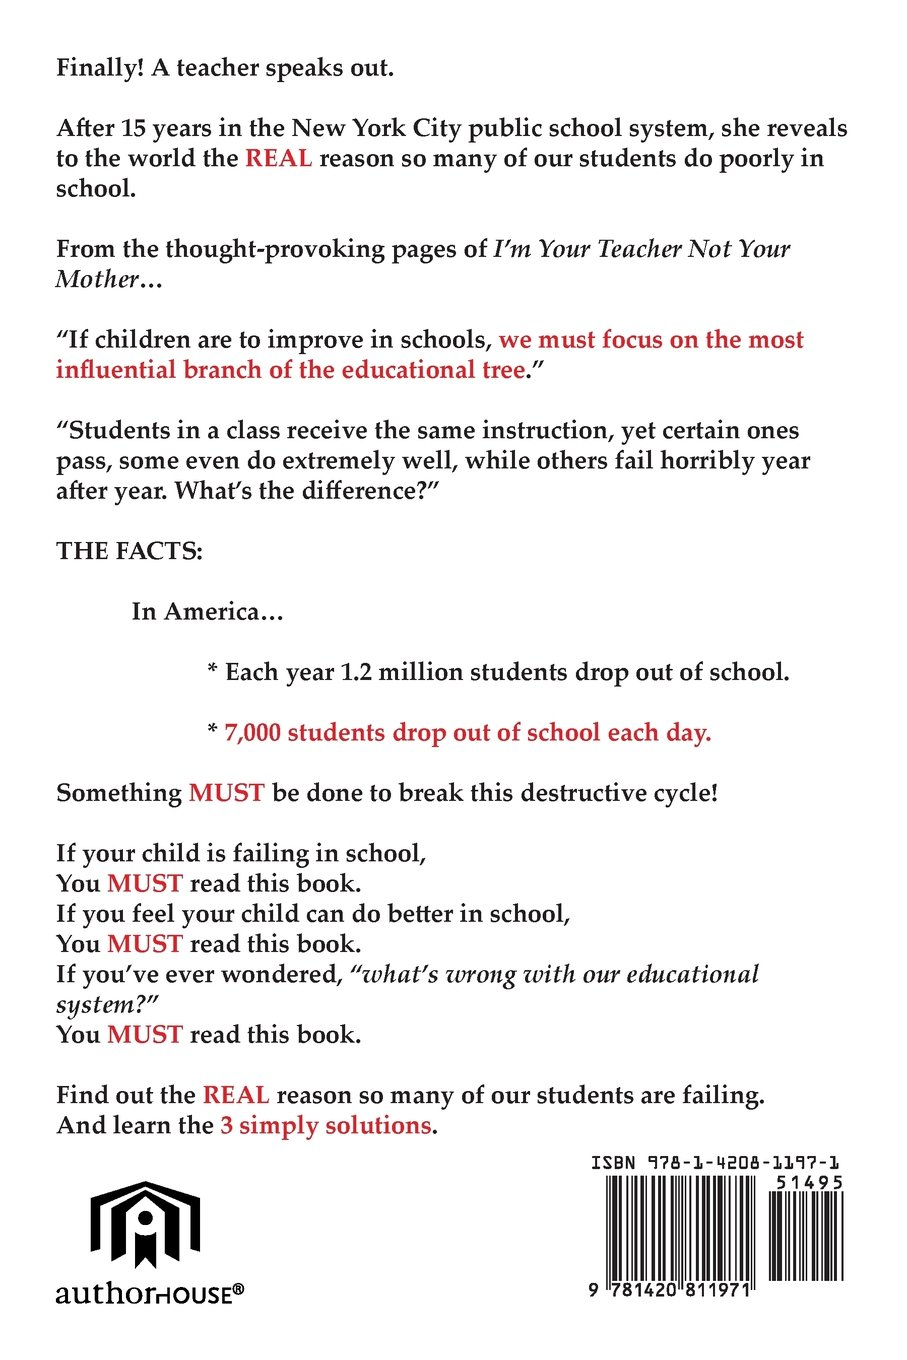 reasons why students fail in school